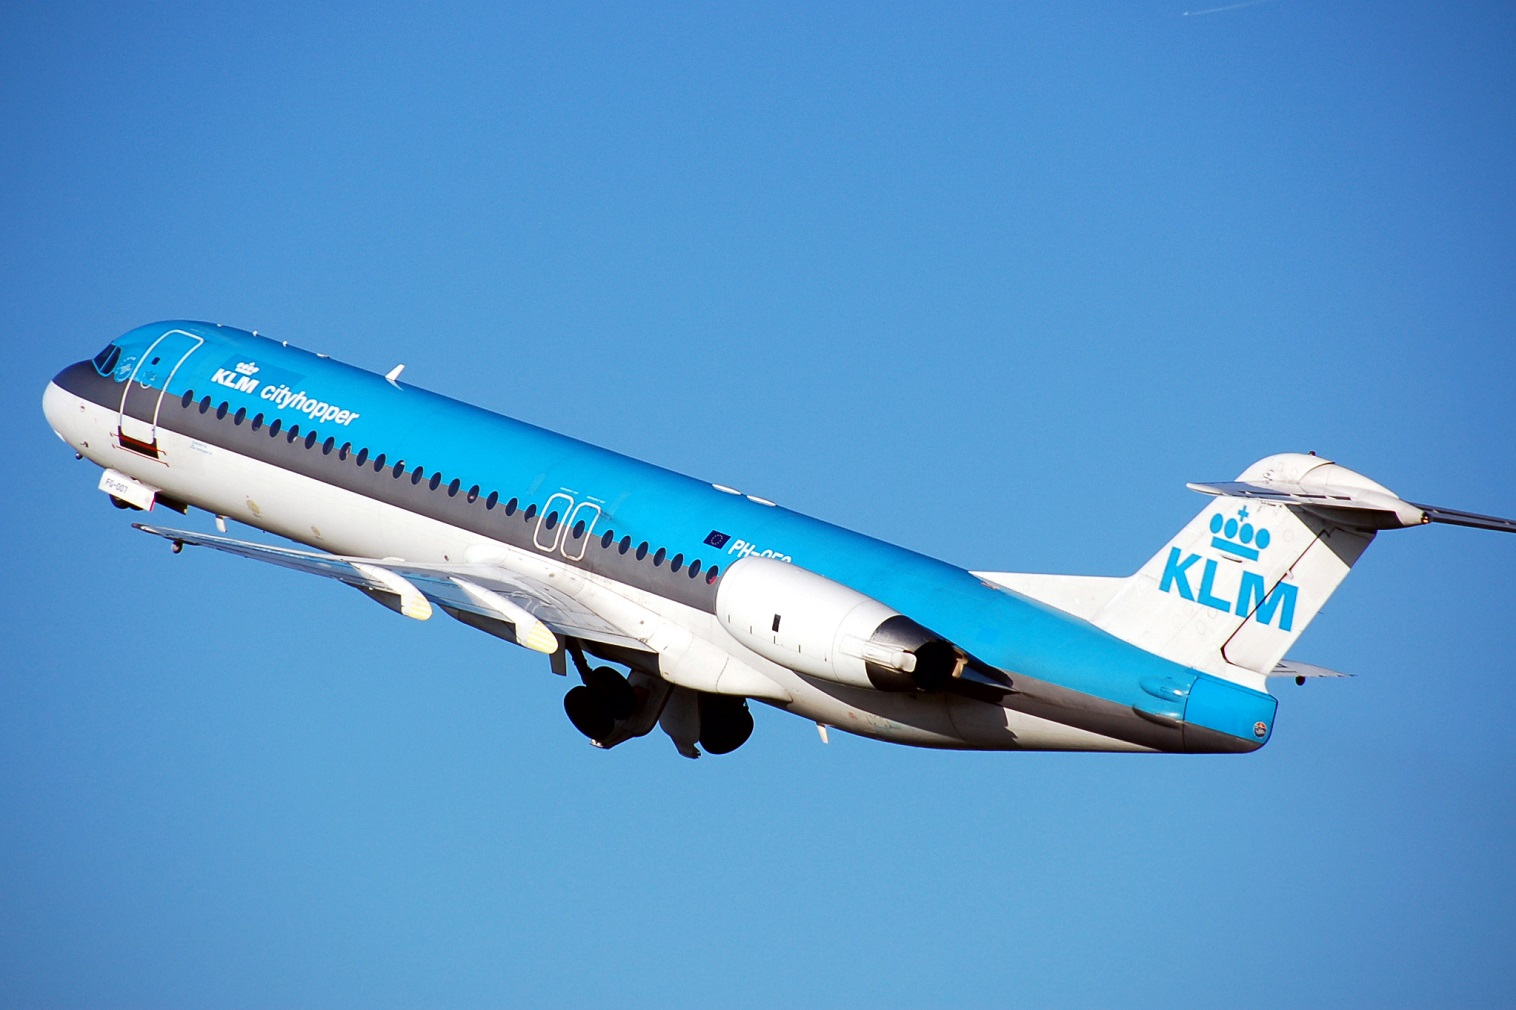 KLM Royal Dutch Airlines resumes daily service to seven European destinations